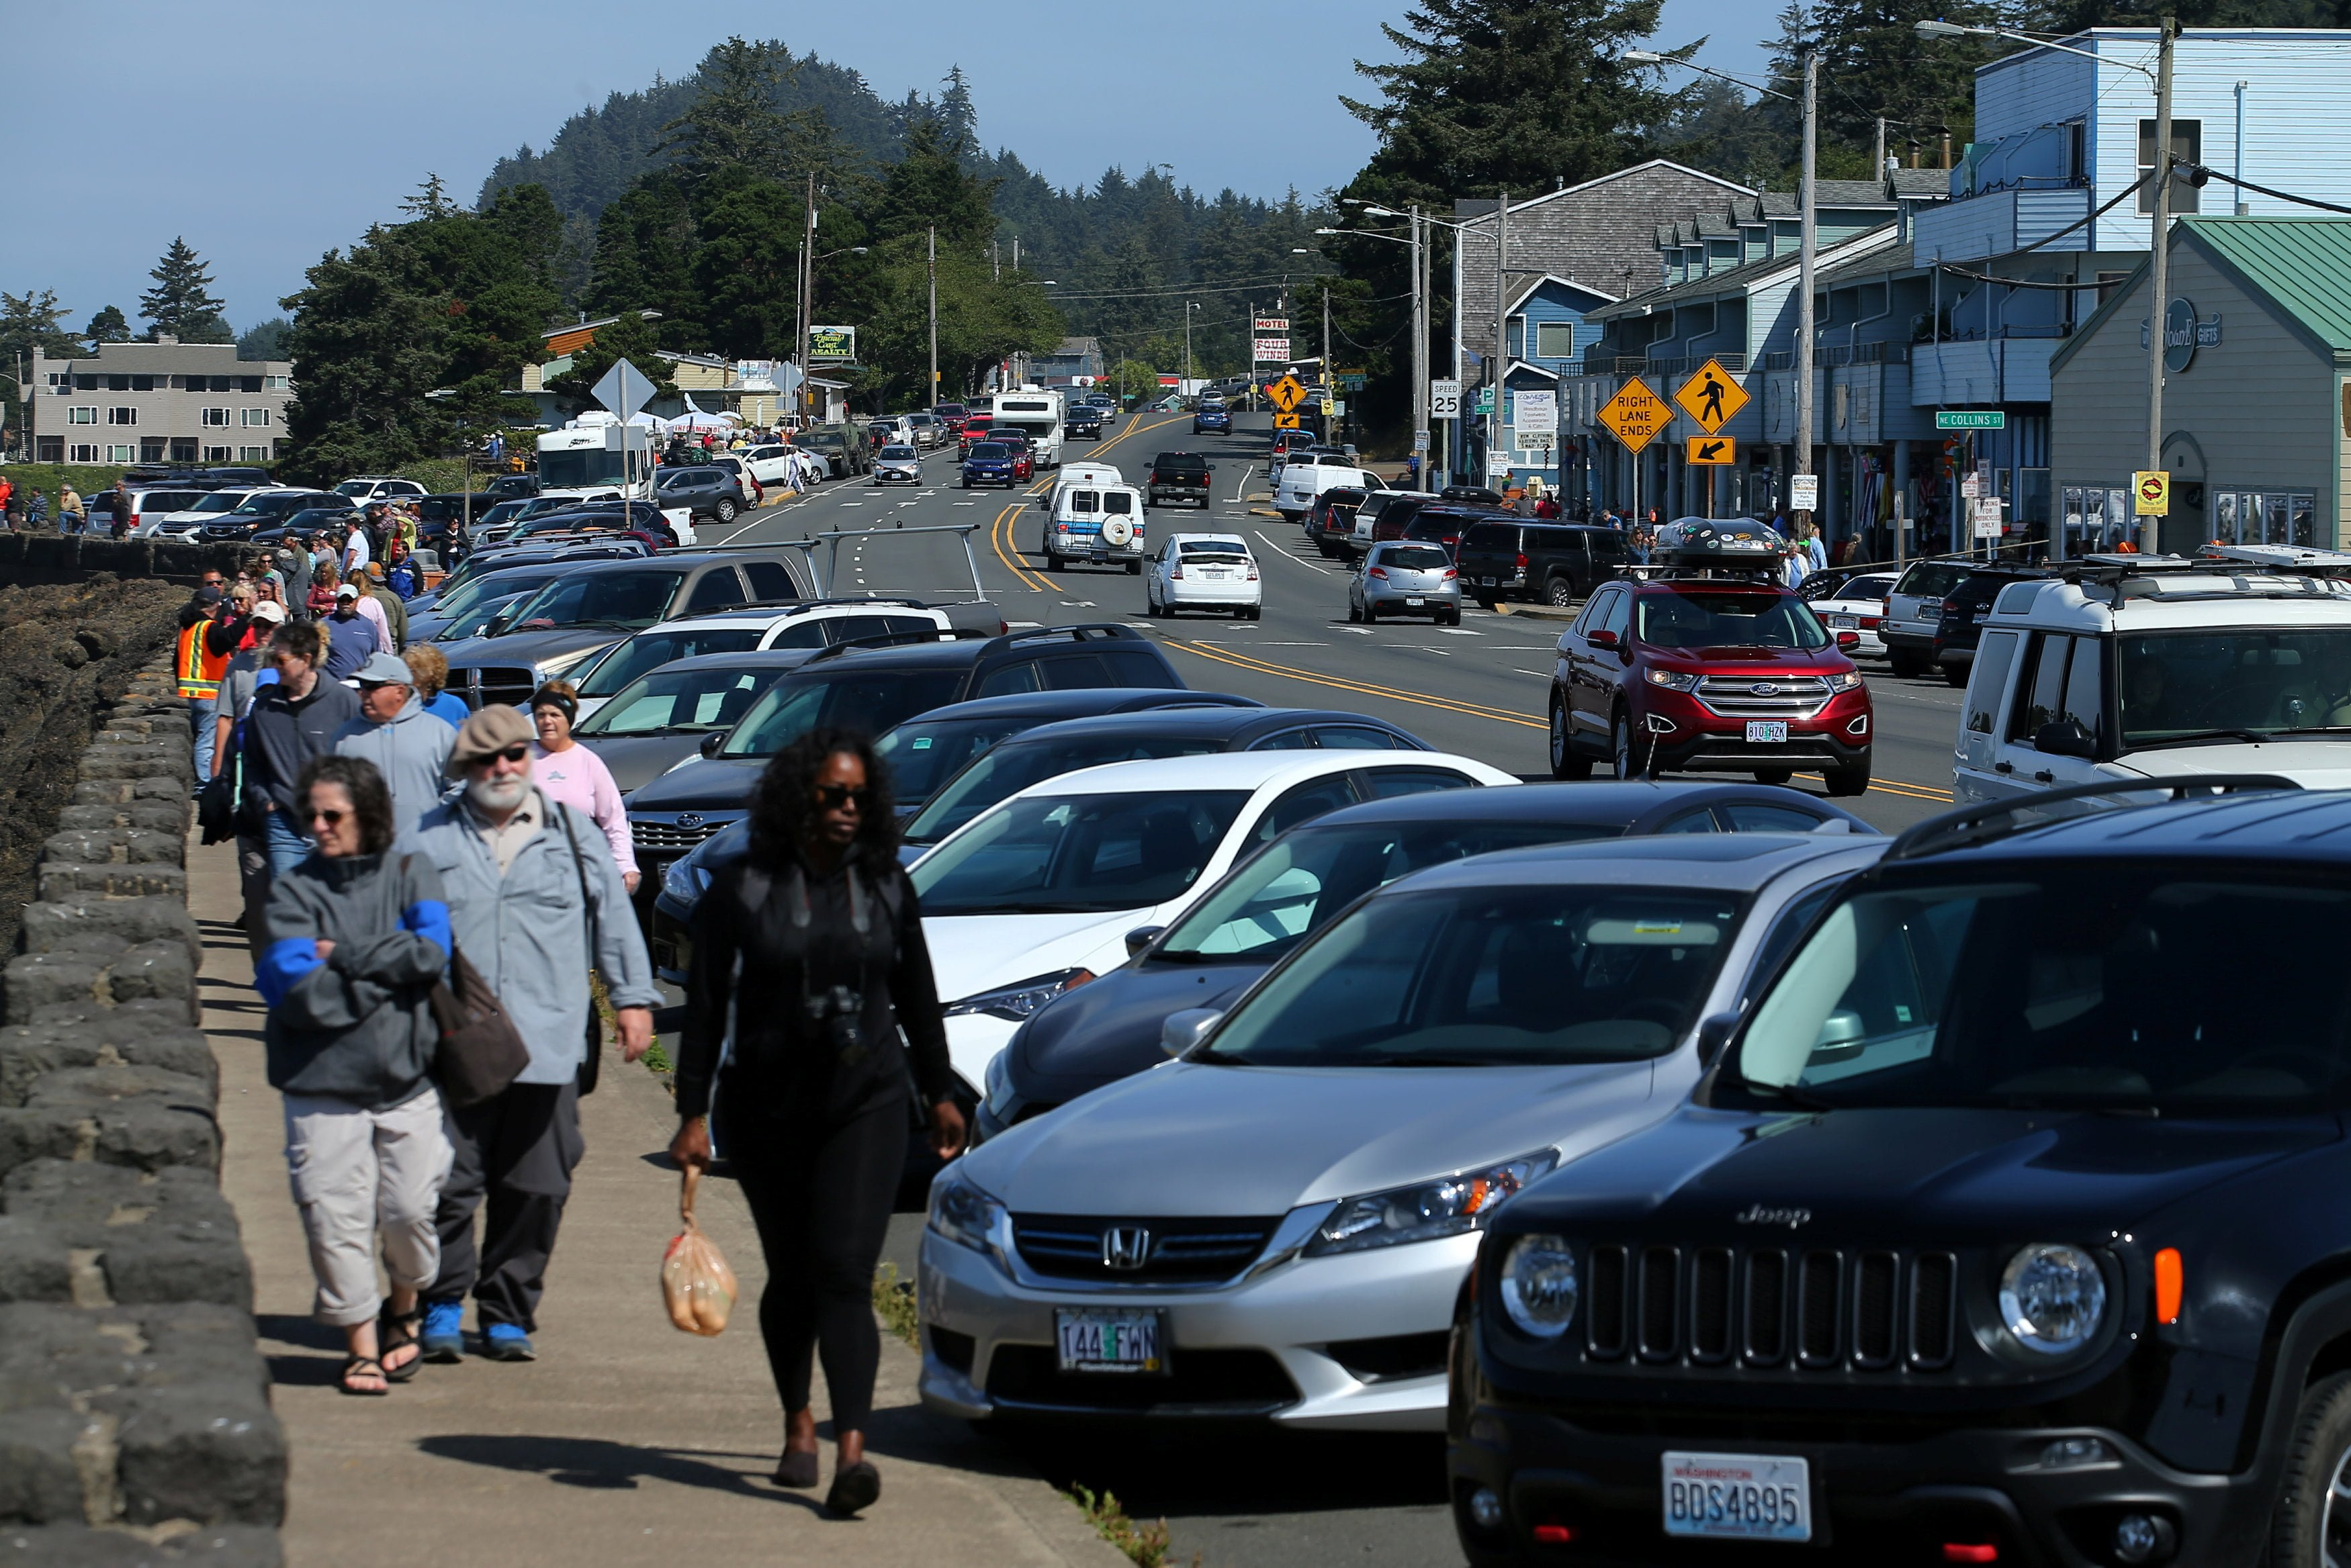 The small town of Depoe Bay prepares for the coming Solar Eclipse, Oregon, U.S., August 20, 2017.